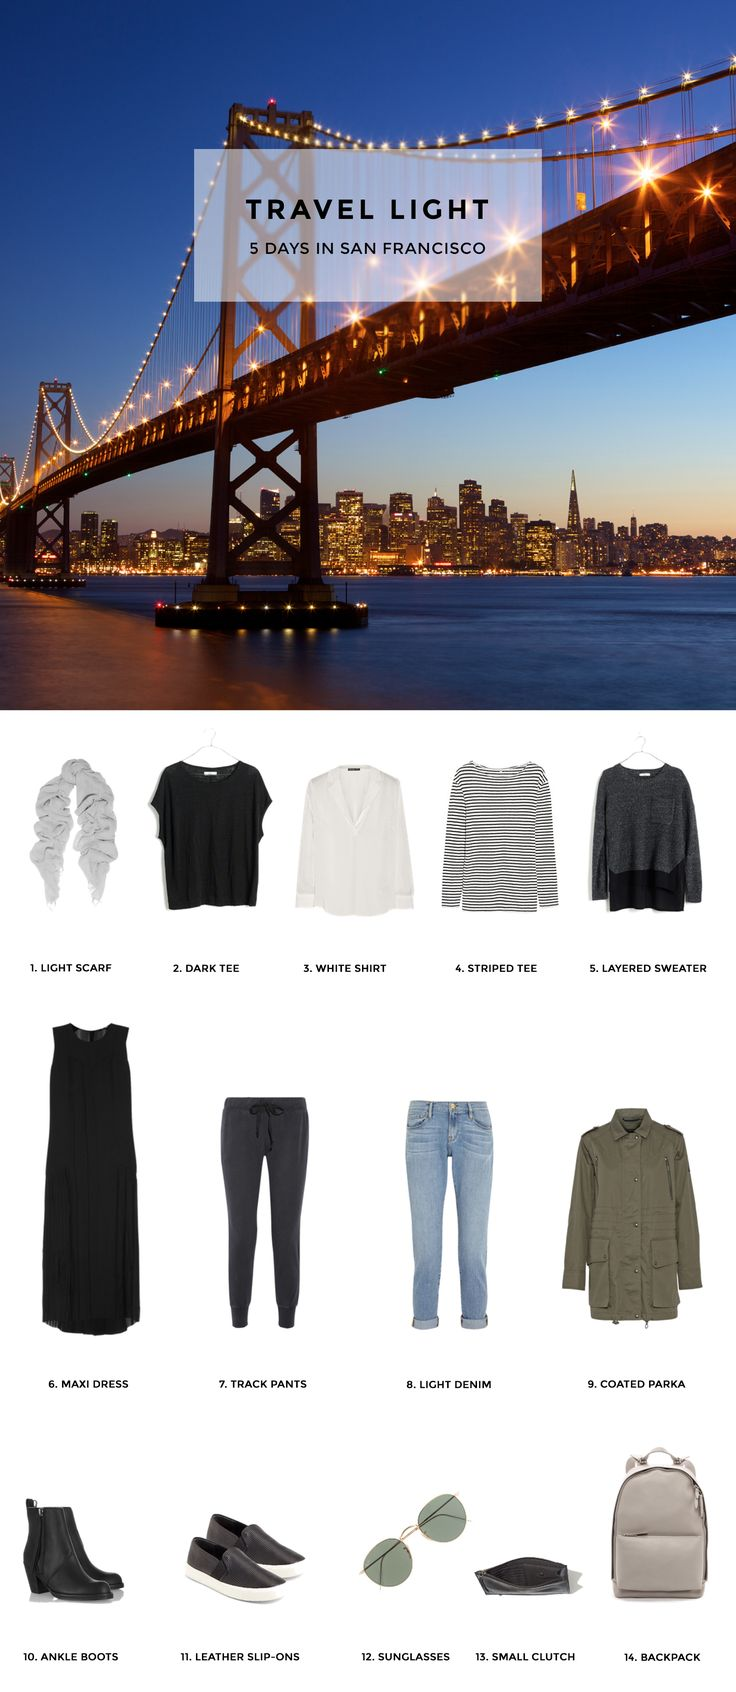 Travel Light - Pack for 5 Days in San Francisco - Includes packing list and outfits.